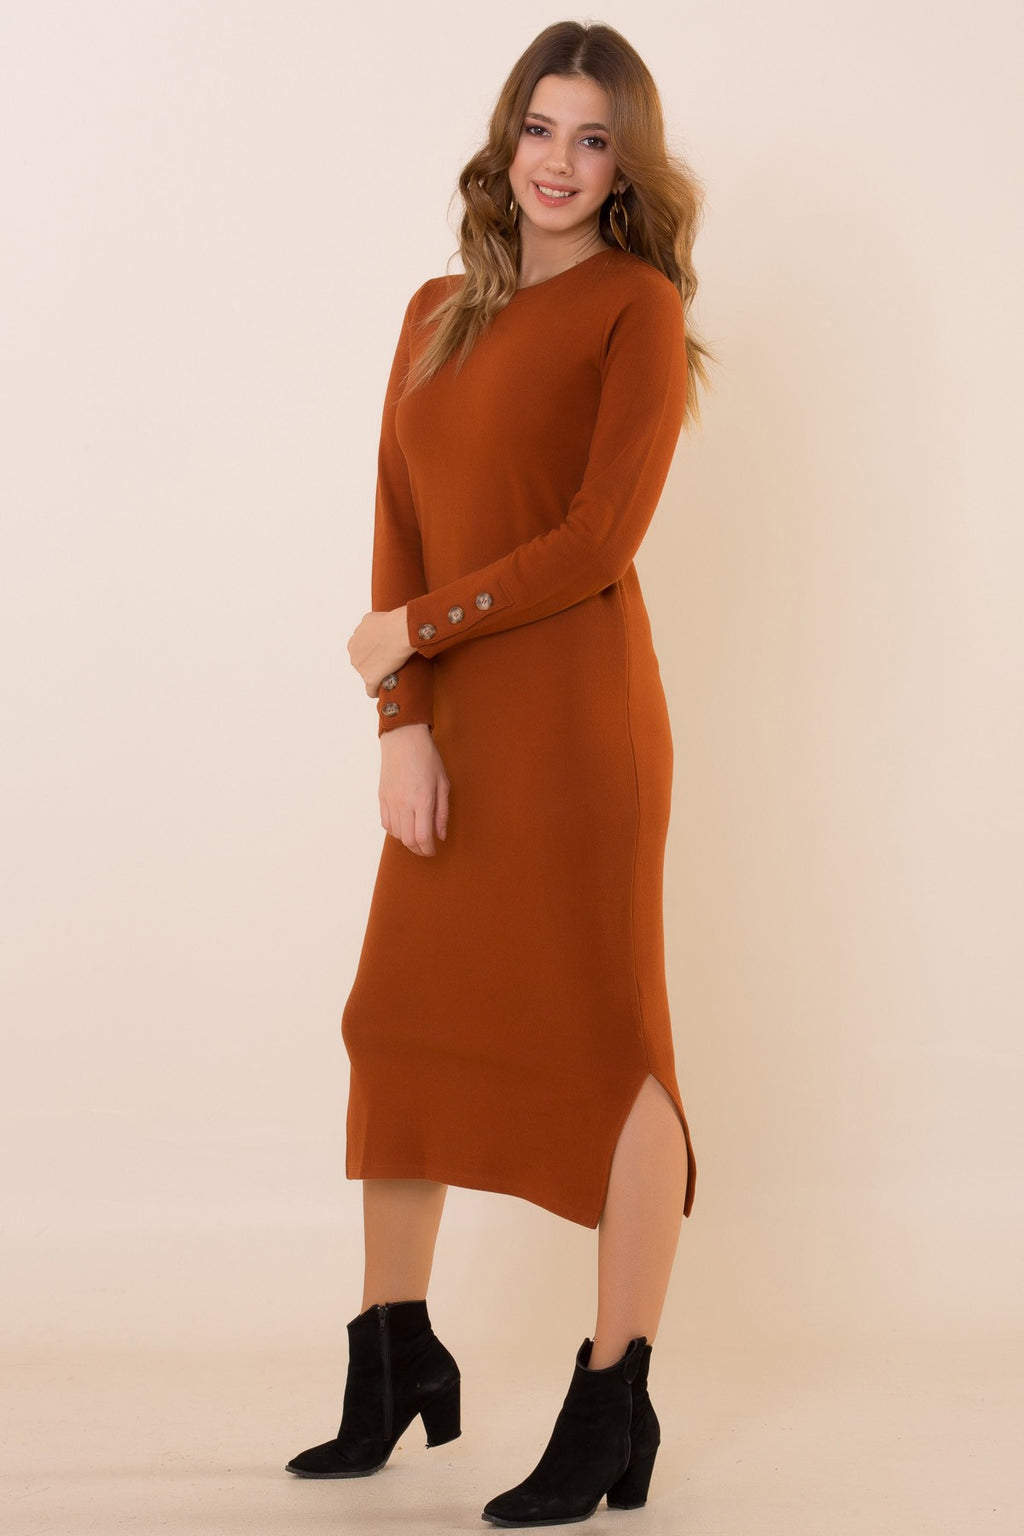 Women's Buttoned Sleeves Mustard Slit Dress (Contest) - THE UNIQUE FIT